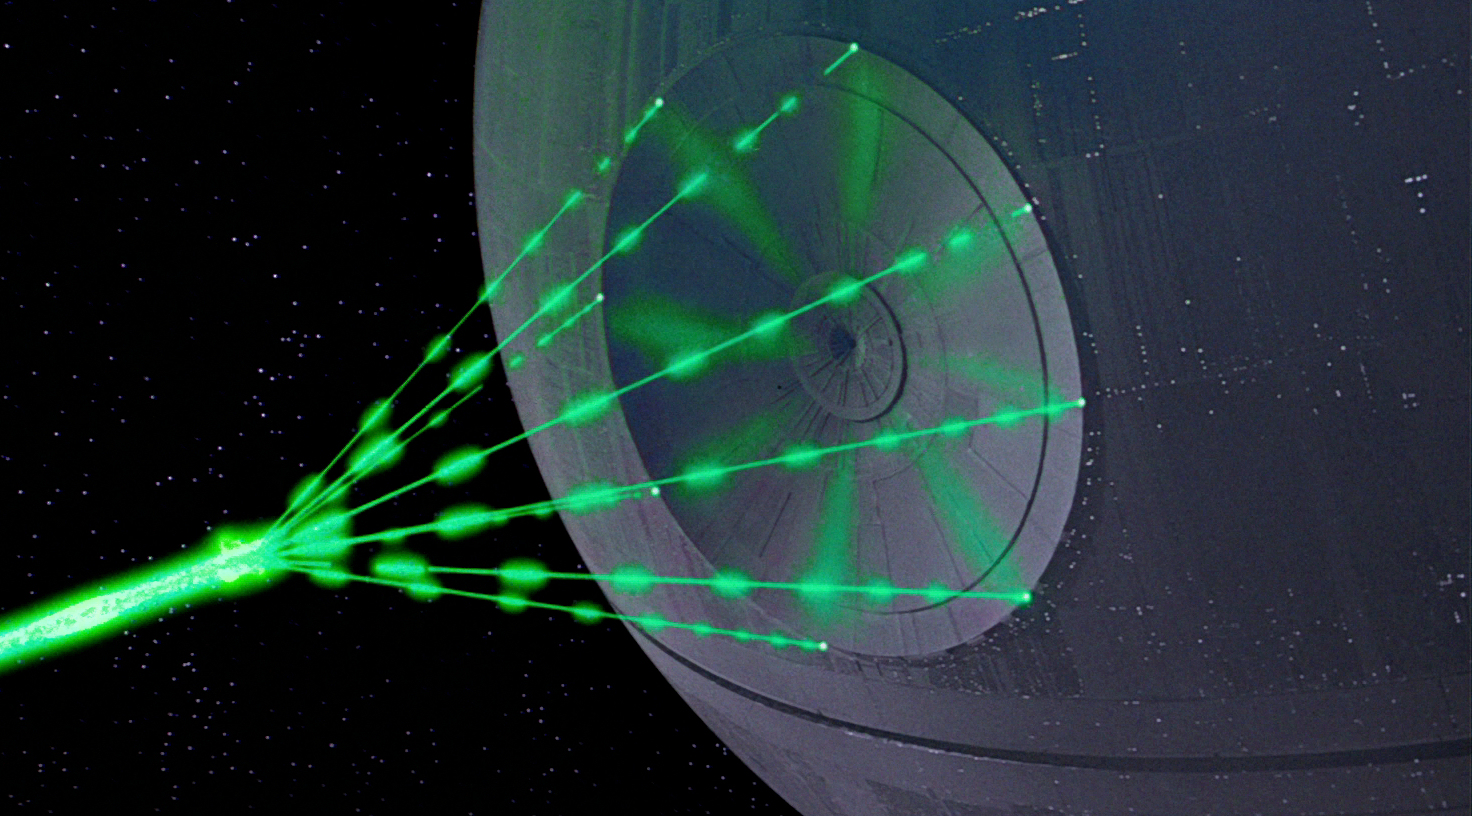 Superlaser Wookieepedia Fandom Powered By Wikia The Circuit Is Designed To Produce A Gun Using Technology Of